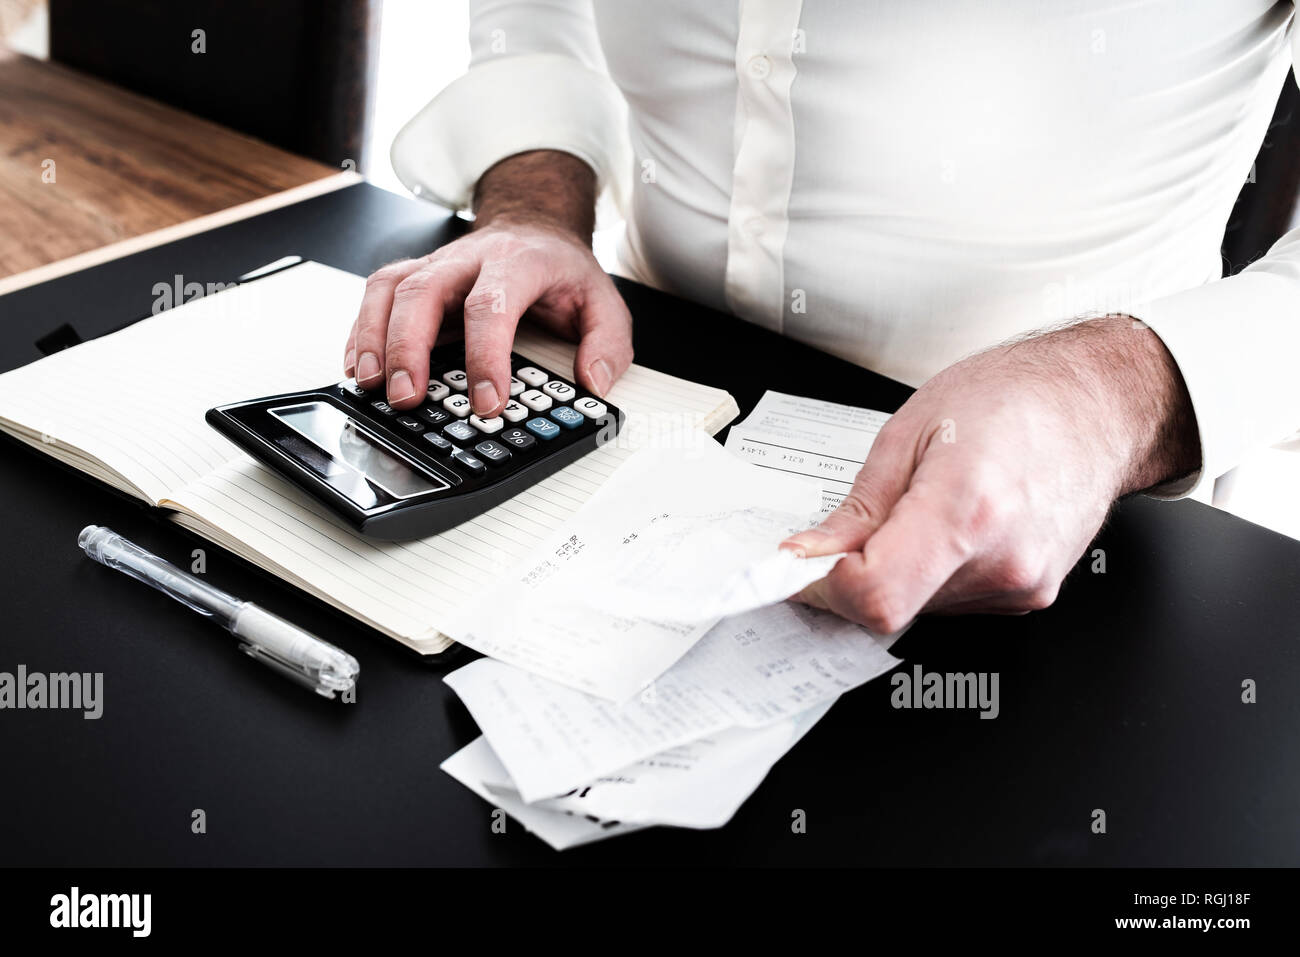 man at desk with calculator, bills or sales slips and notpad - Stock Image